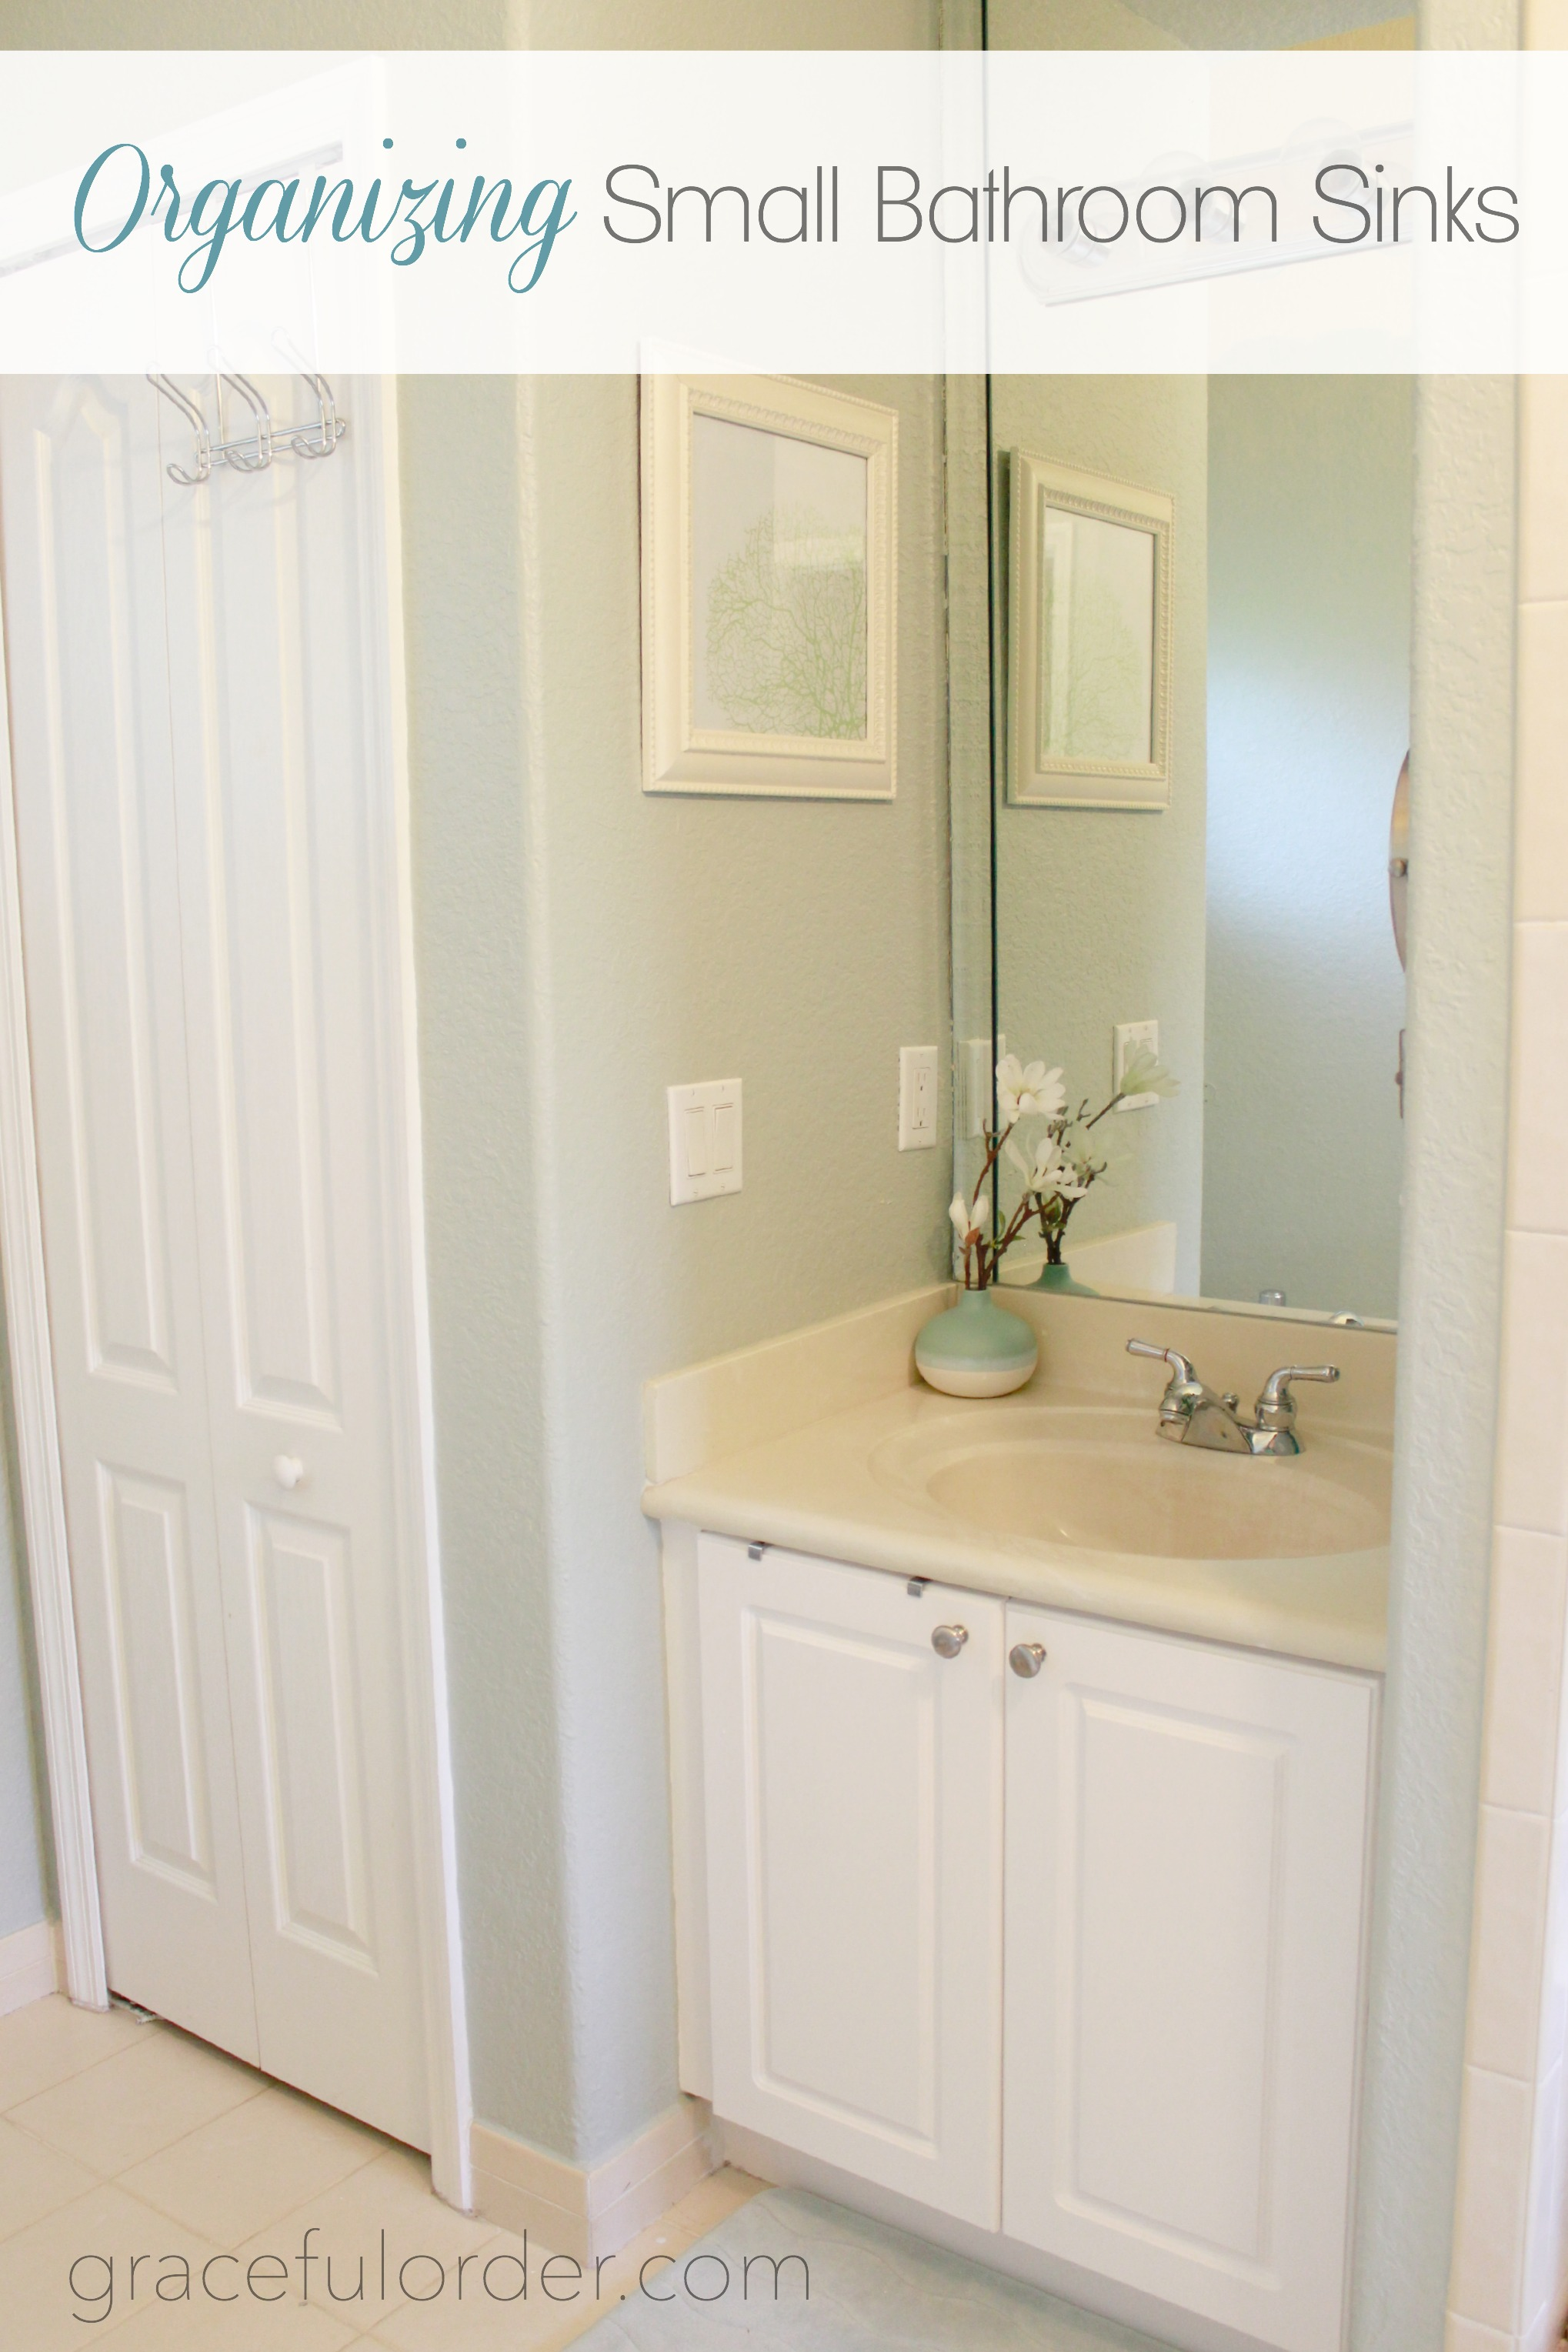 Picture of: Organizing Small Bathroom Sinks Graceful Order